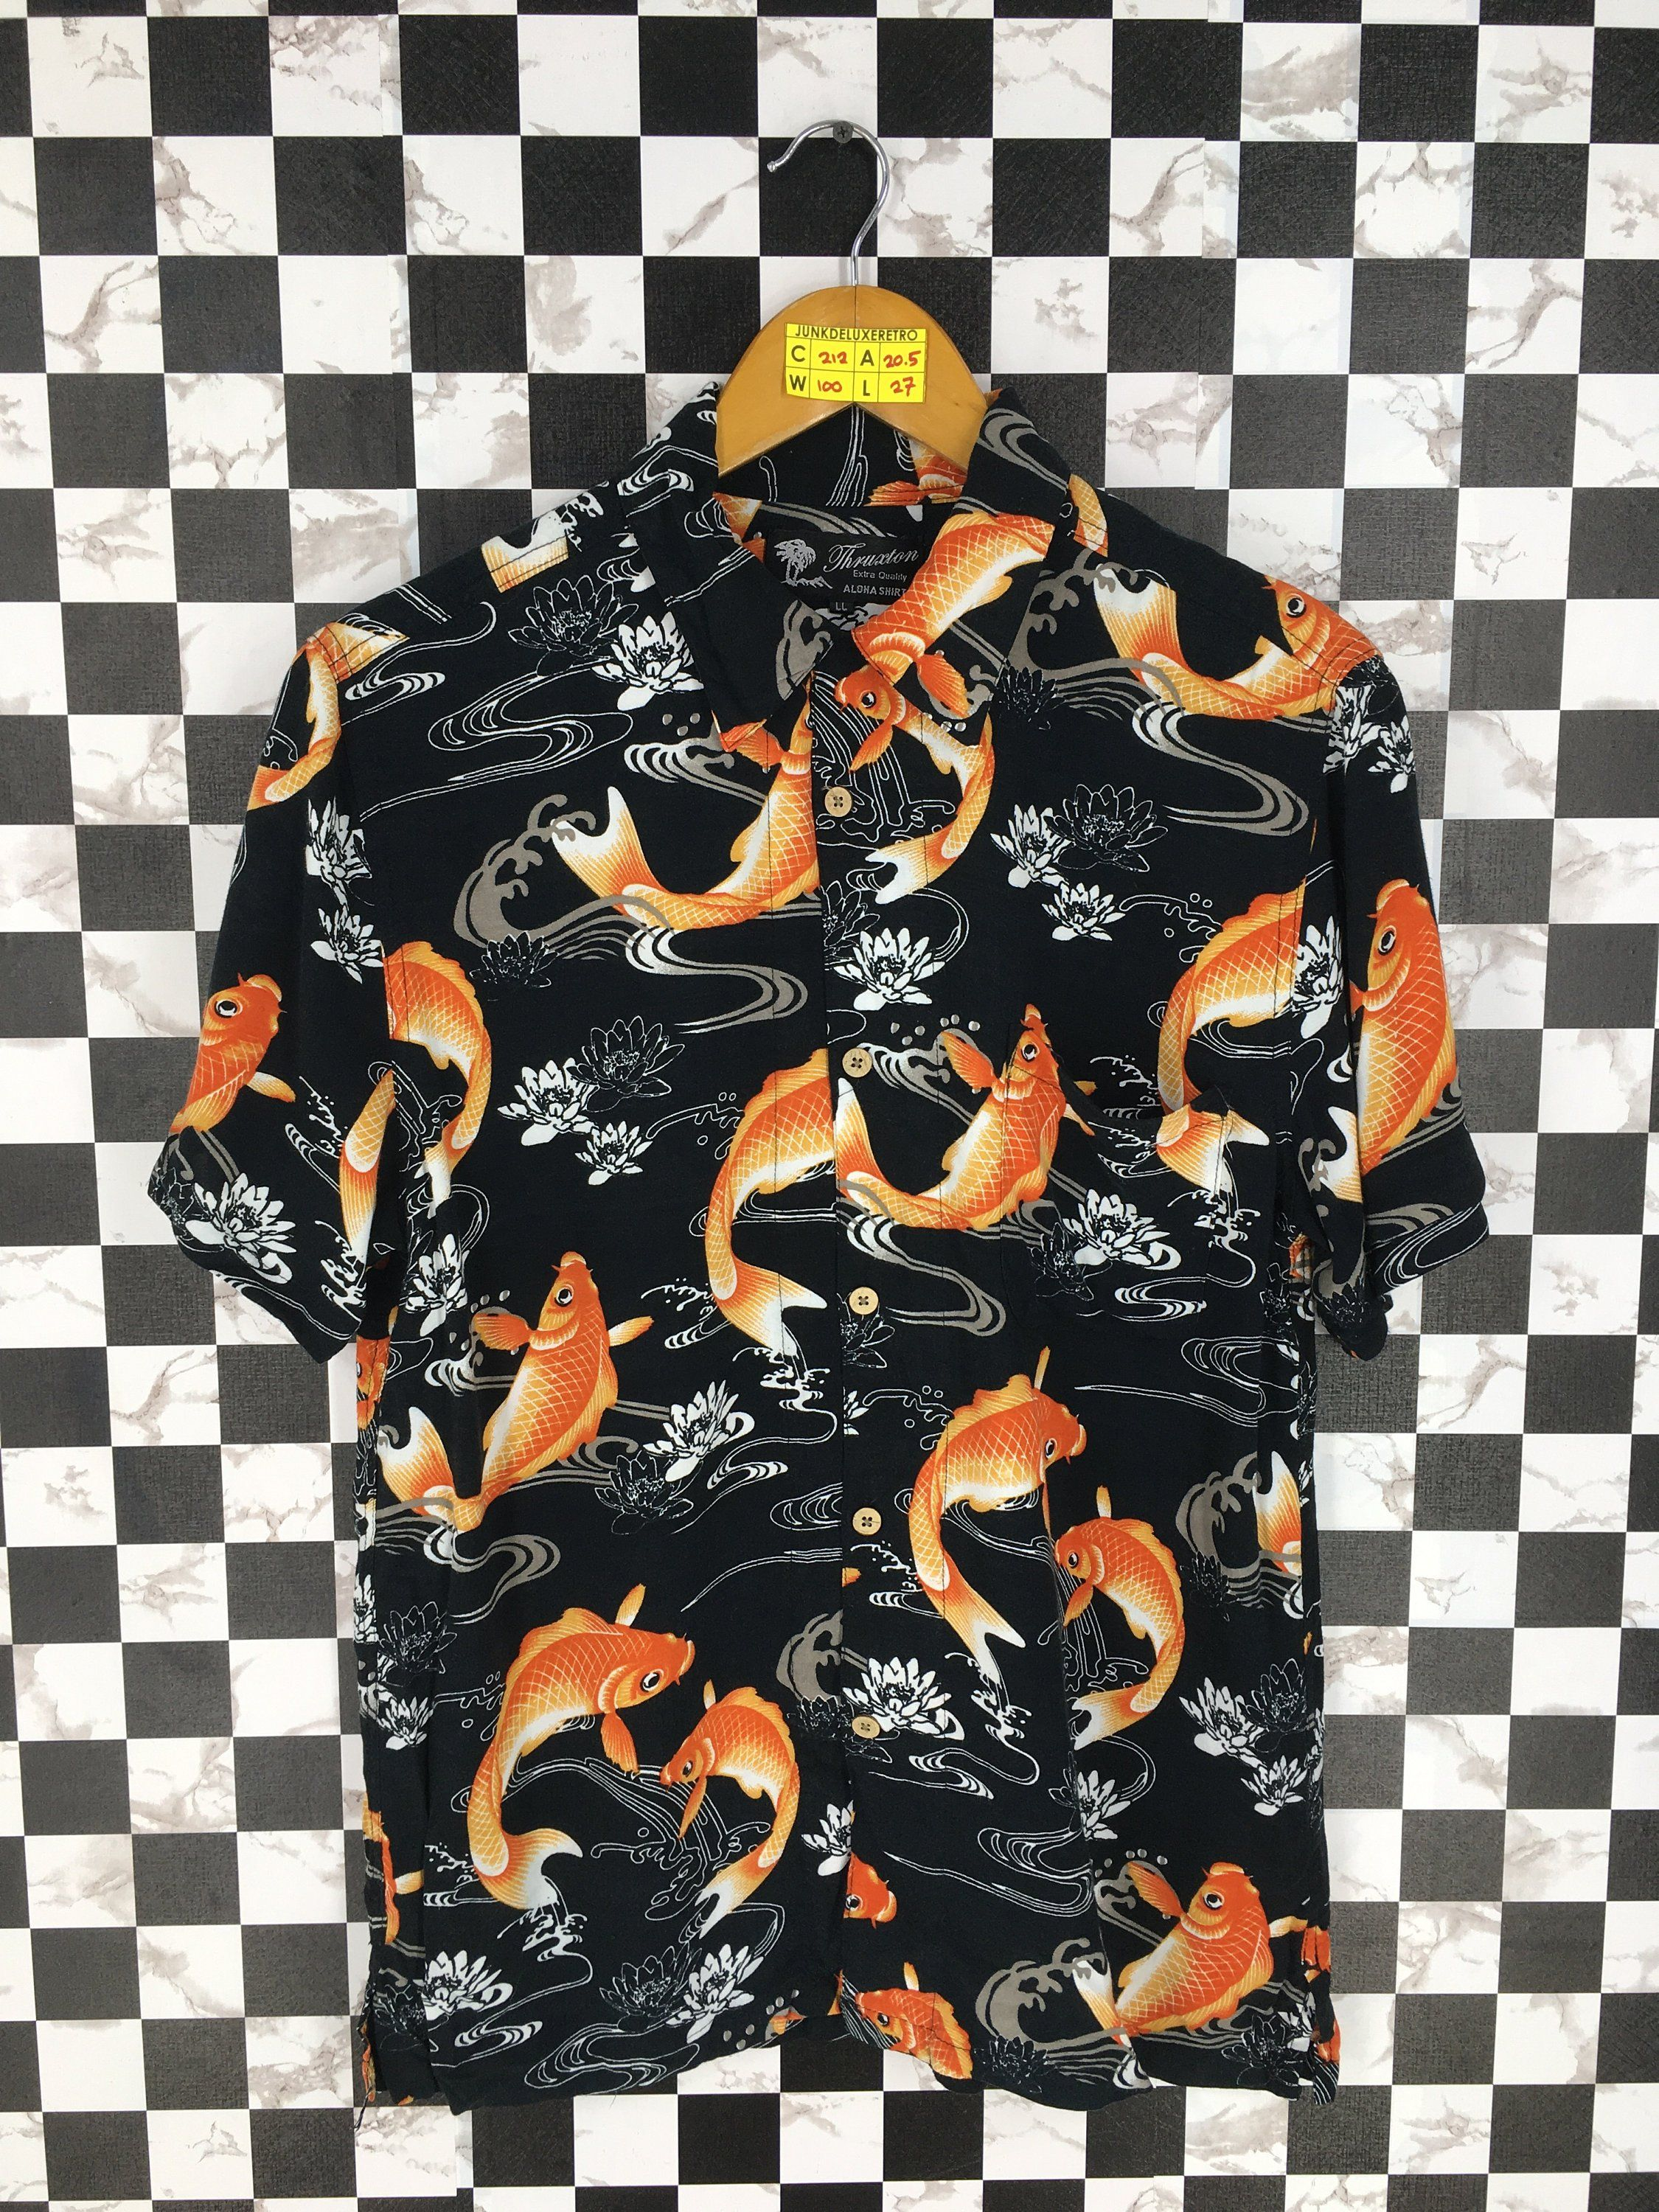 Hawaiian Shirt Patterns : hawaiian, shirt, patterns, Vintage, Japanese, Hawaiian, Shirt, Medium, Hawaii, Japan, Shirt,, Rayon